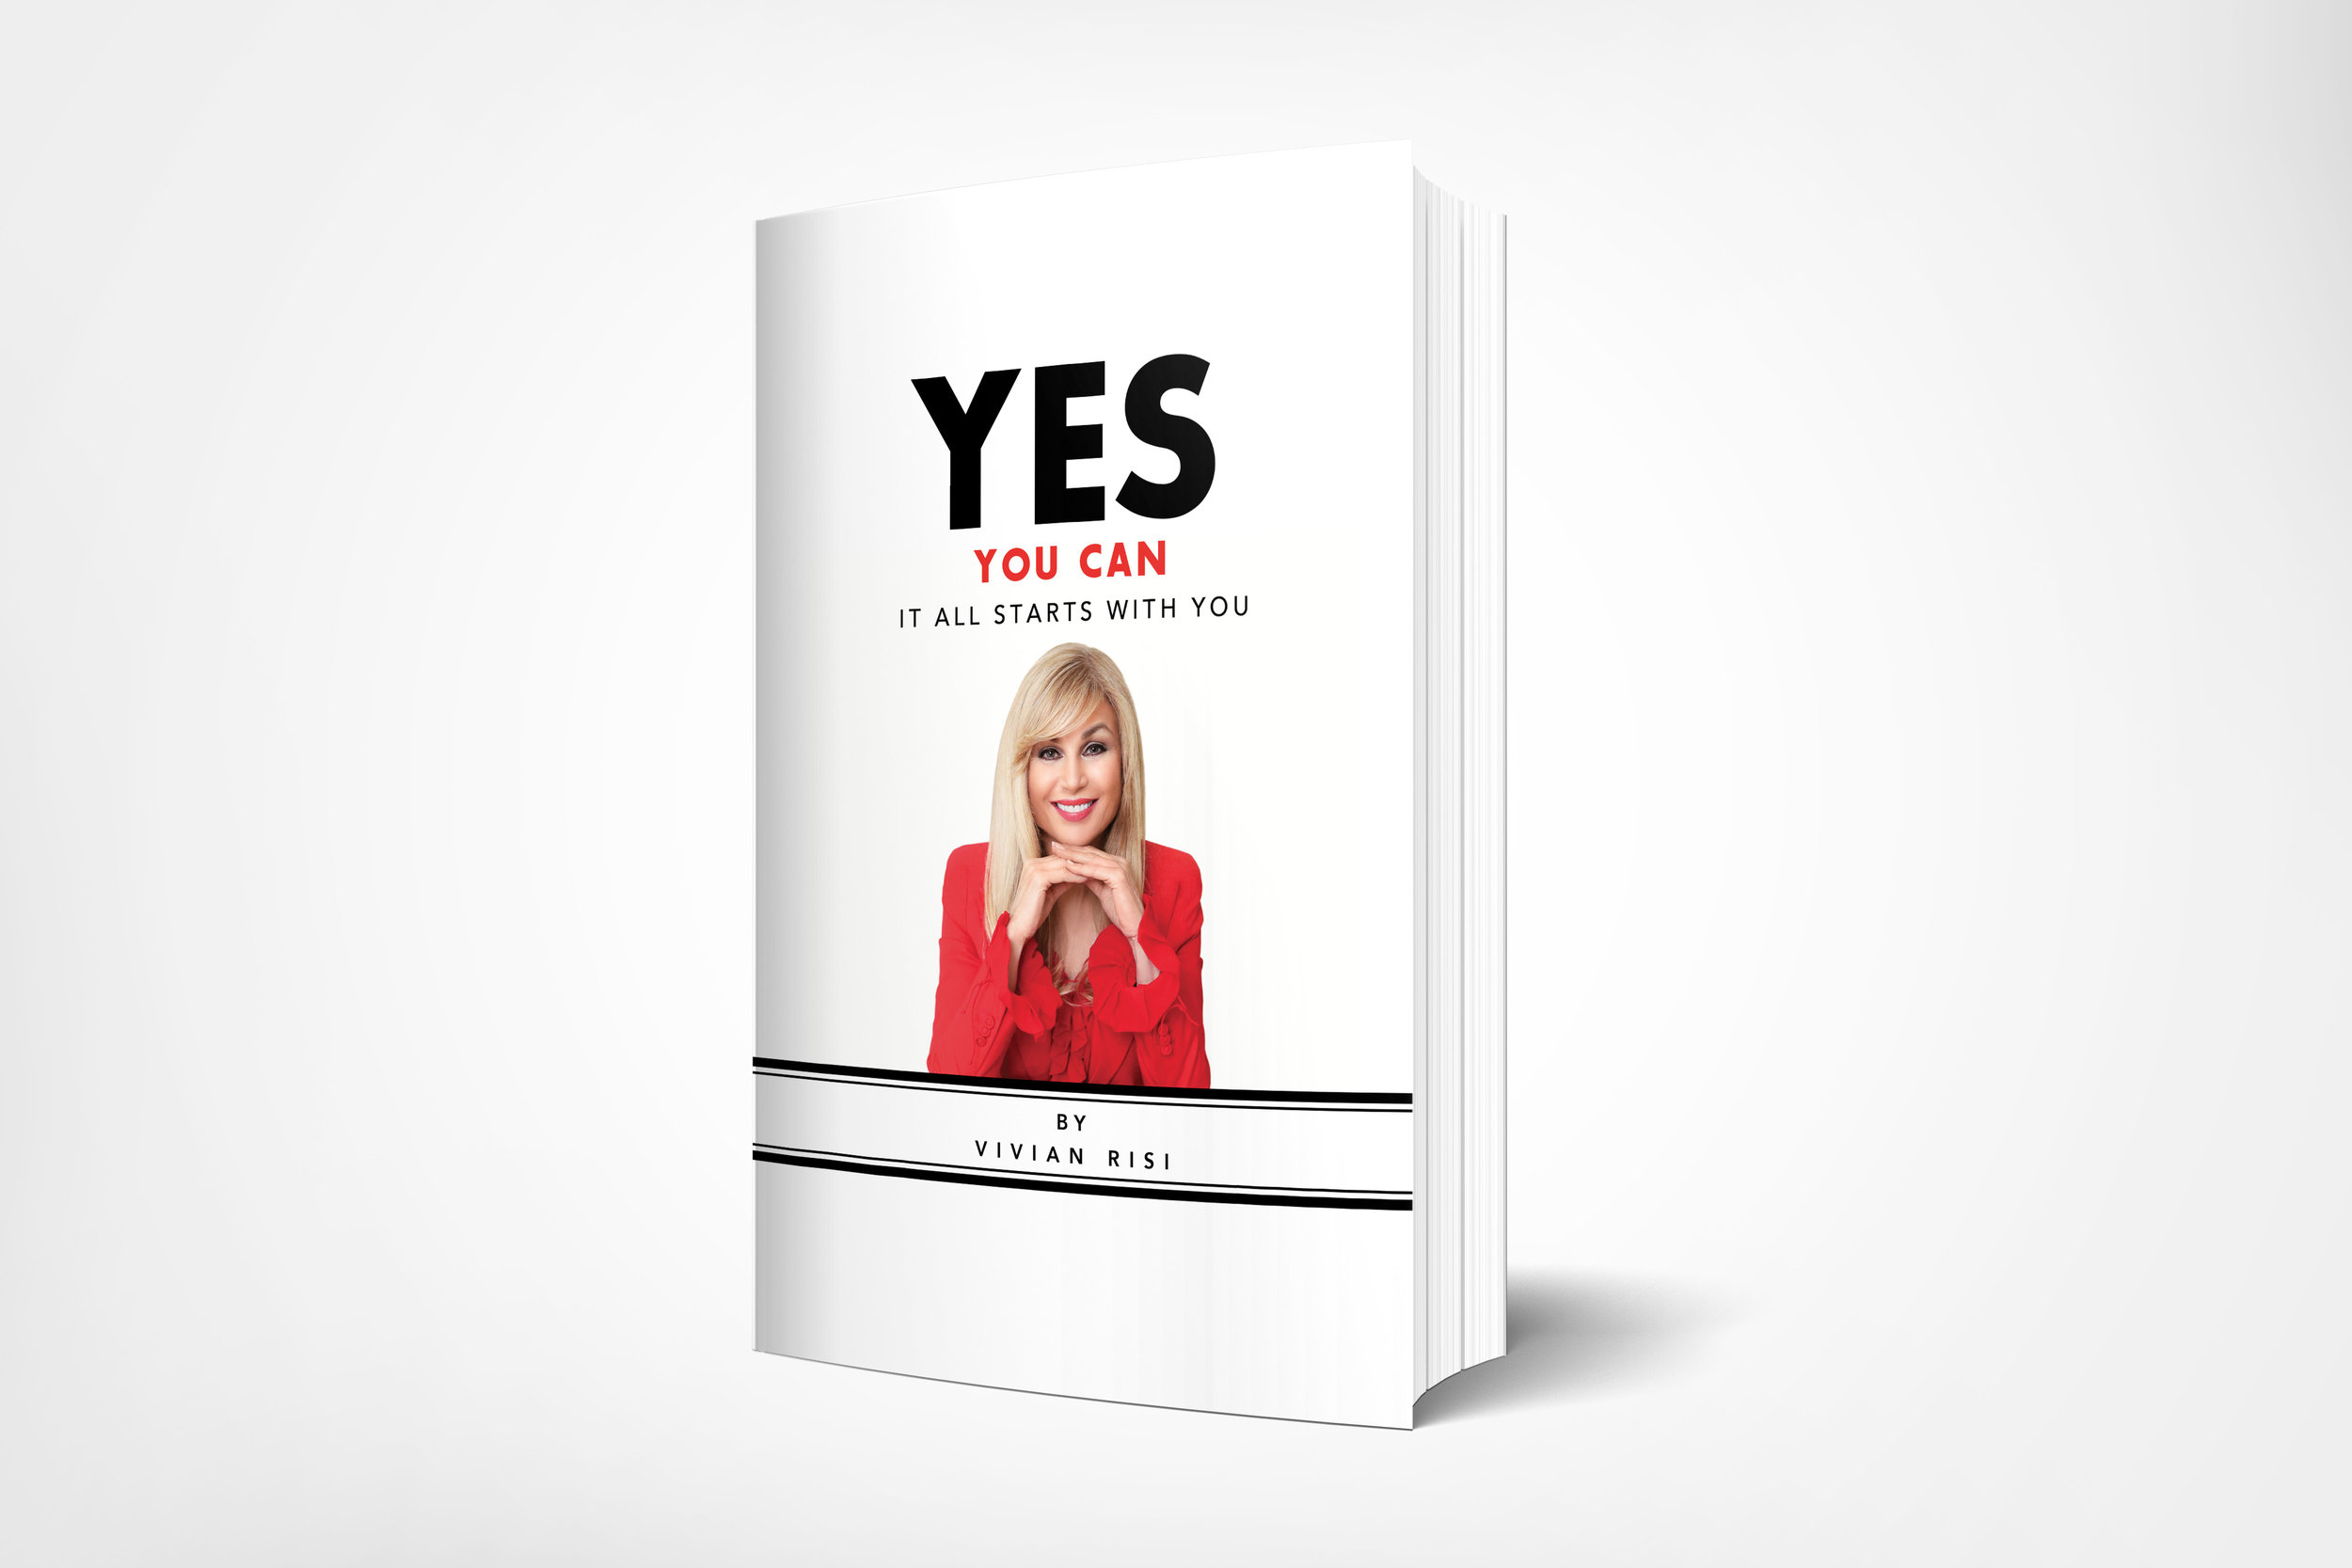 YES YOU CAN - By Vivian Risi - Coming Soon